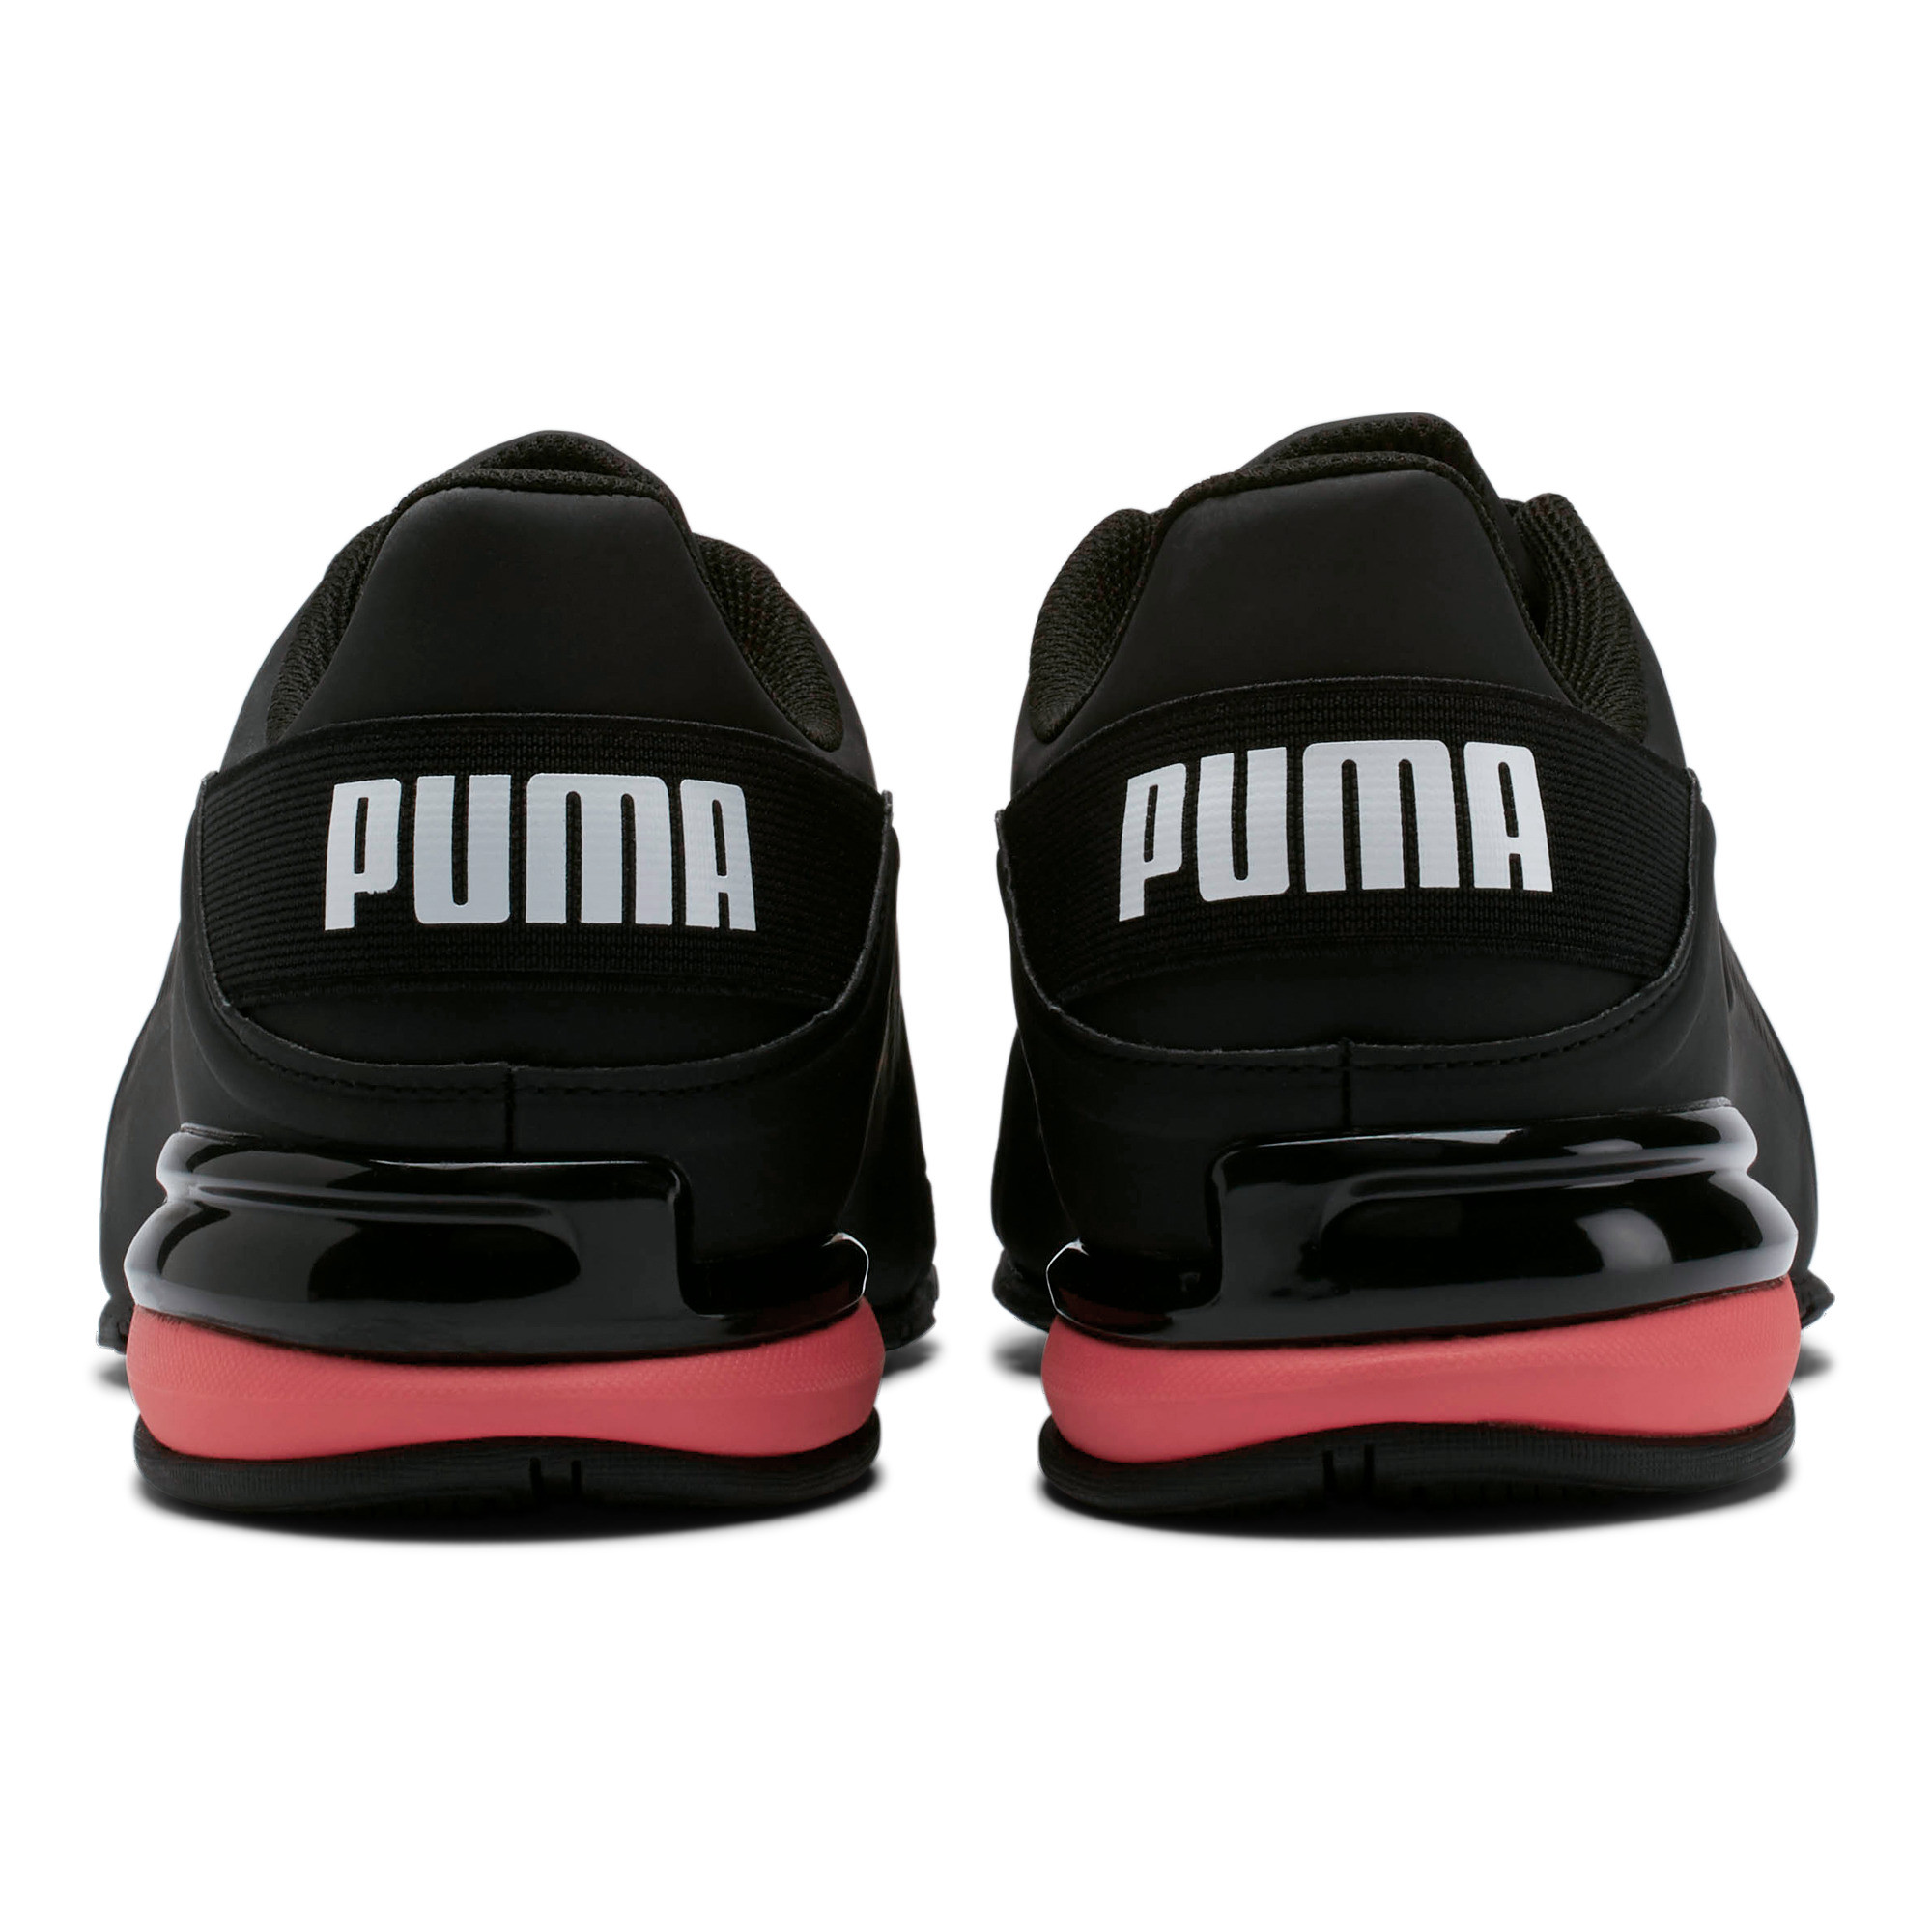 PUMA-Viz-Runner-Men-s-Running-Shoes-Men-Shoe-Running thumbnail 3